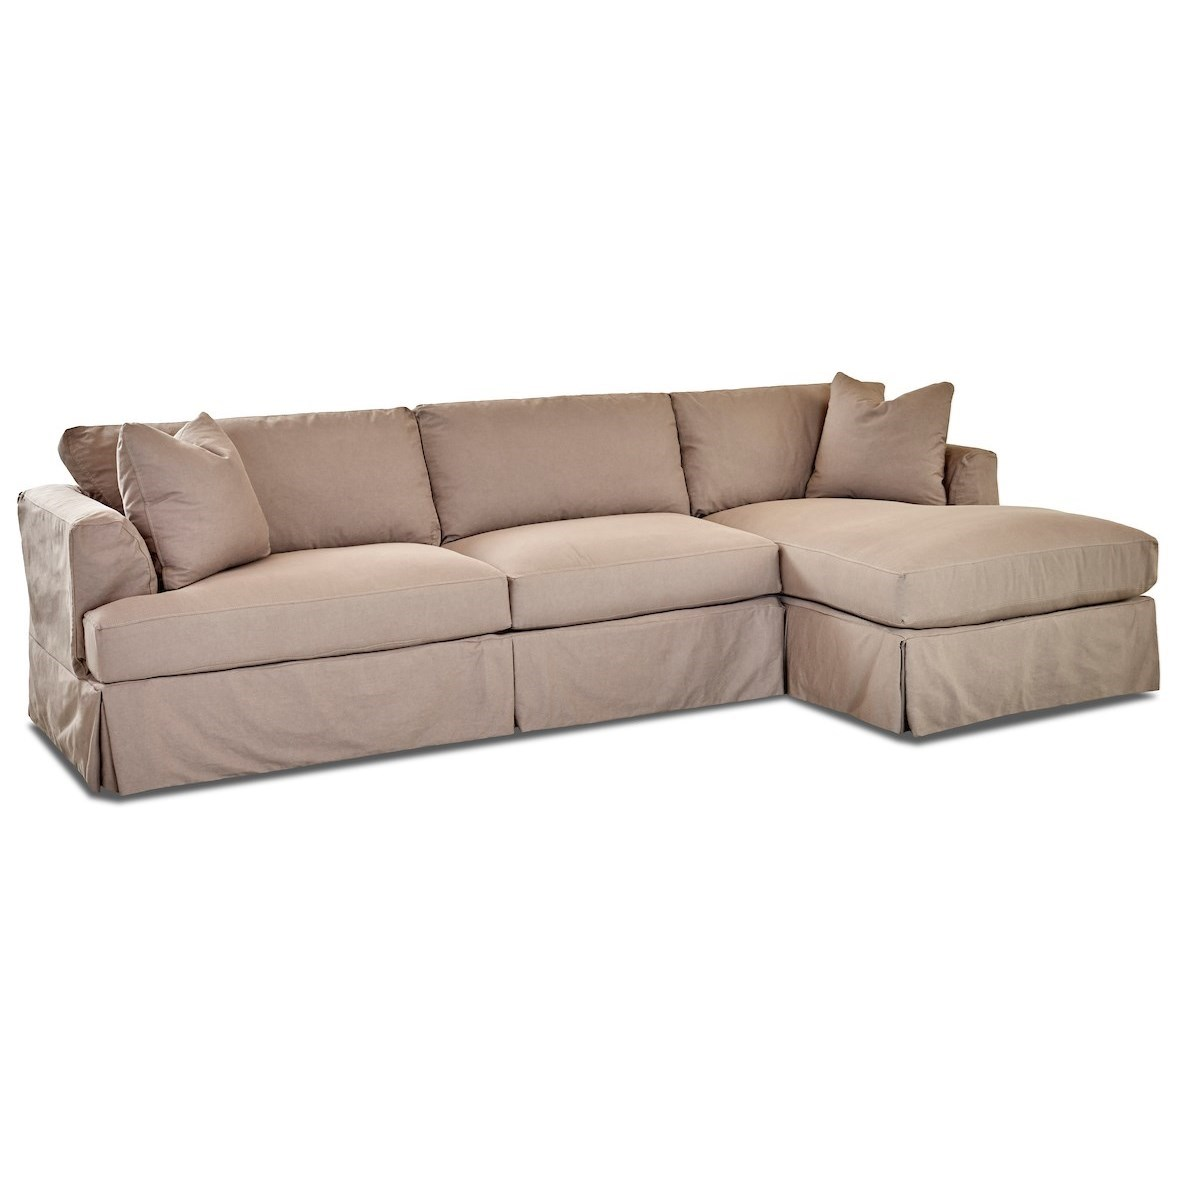 3-Seat Chaise Sofa Sectional w/ RAF Chaise